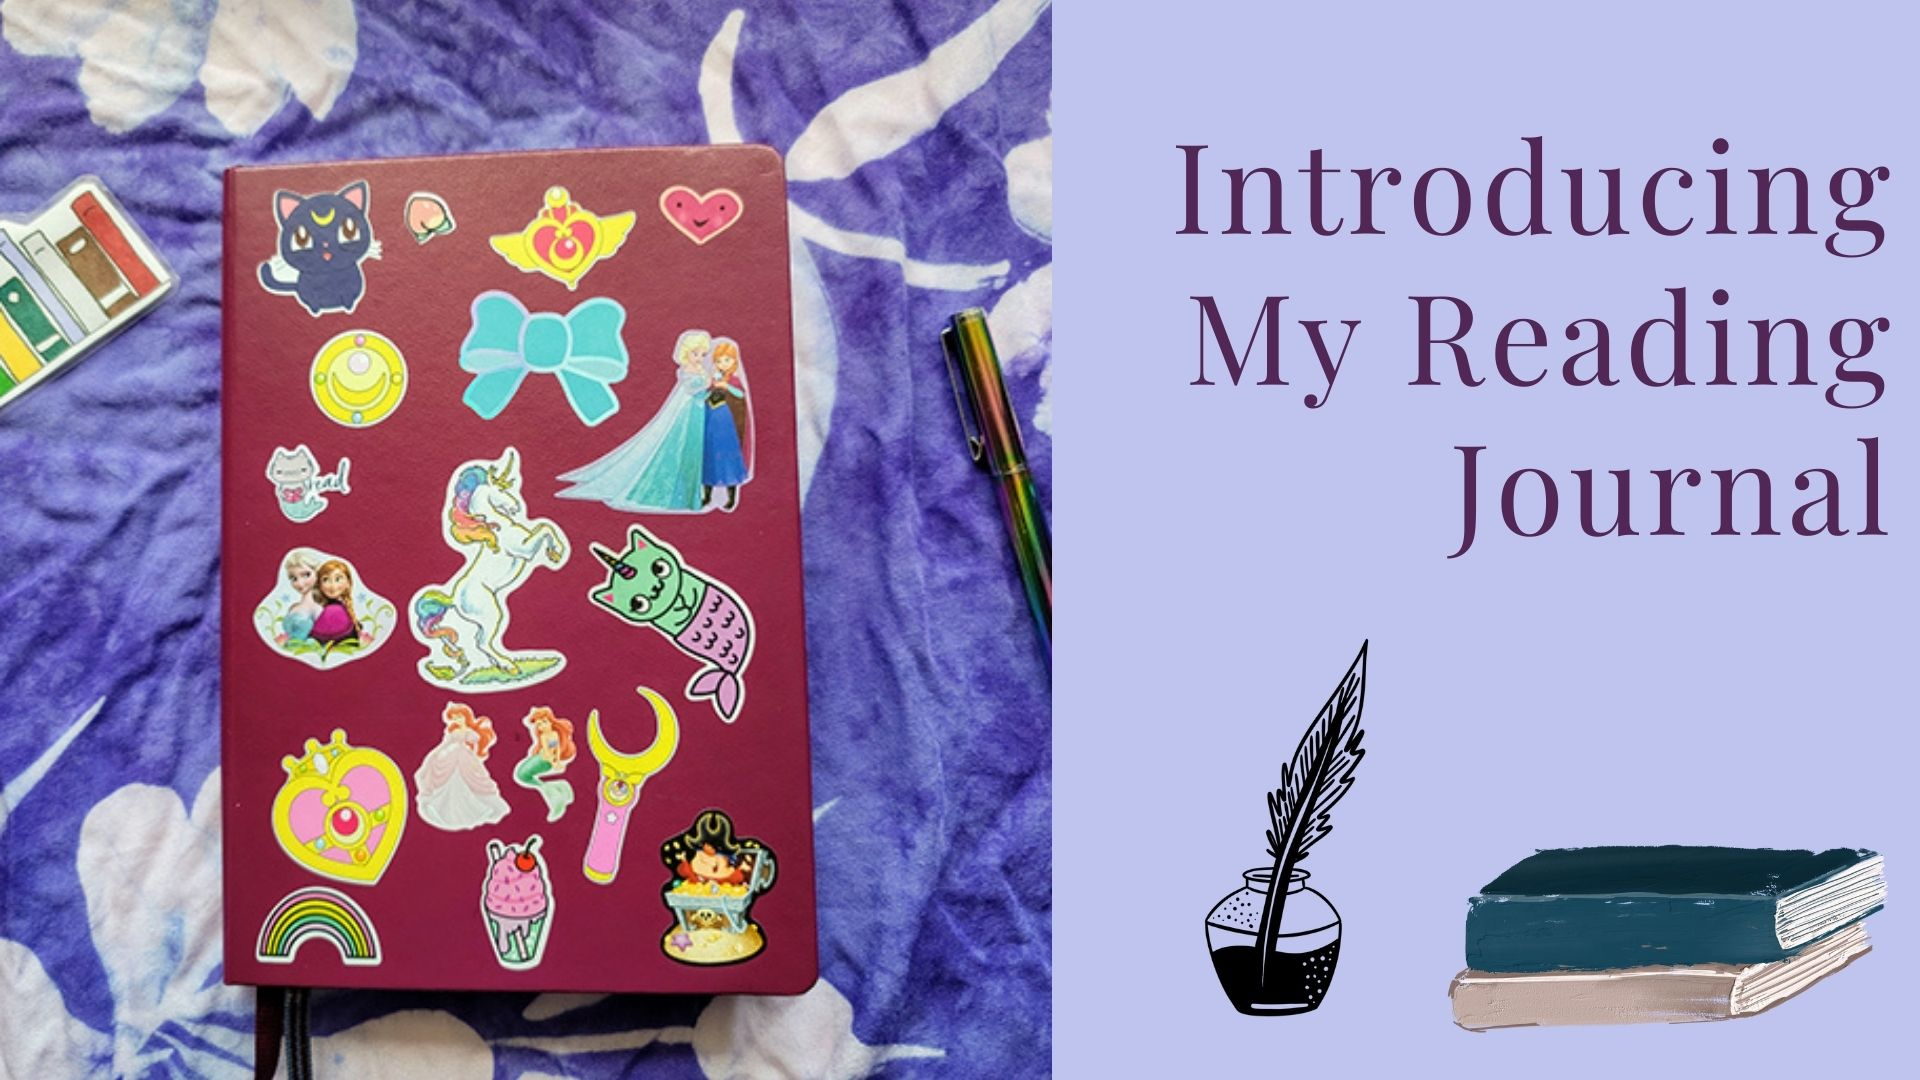 Introducing My Reading Journal